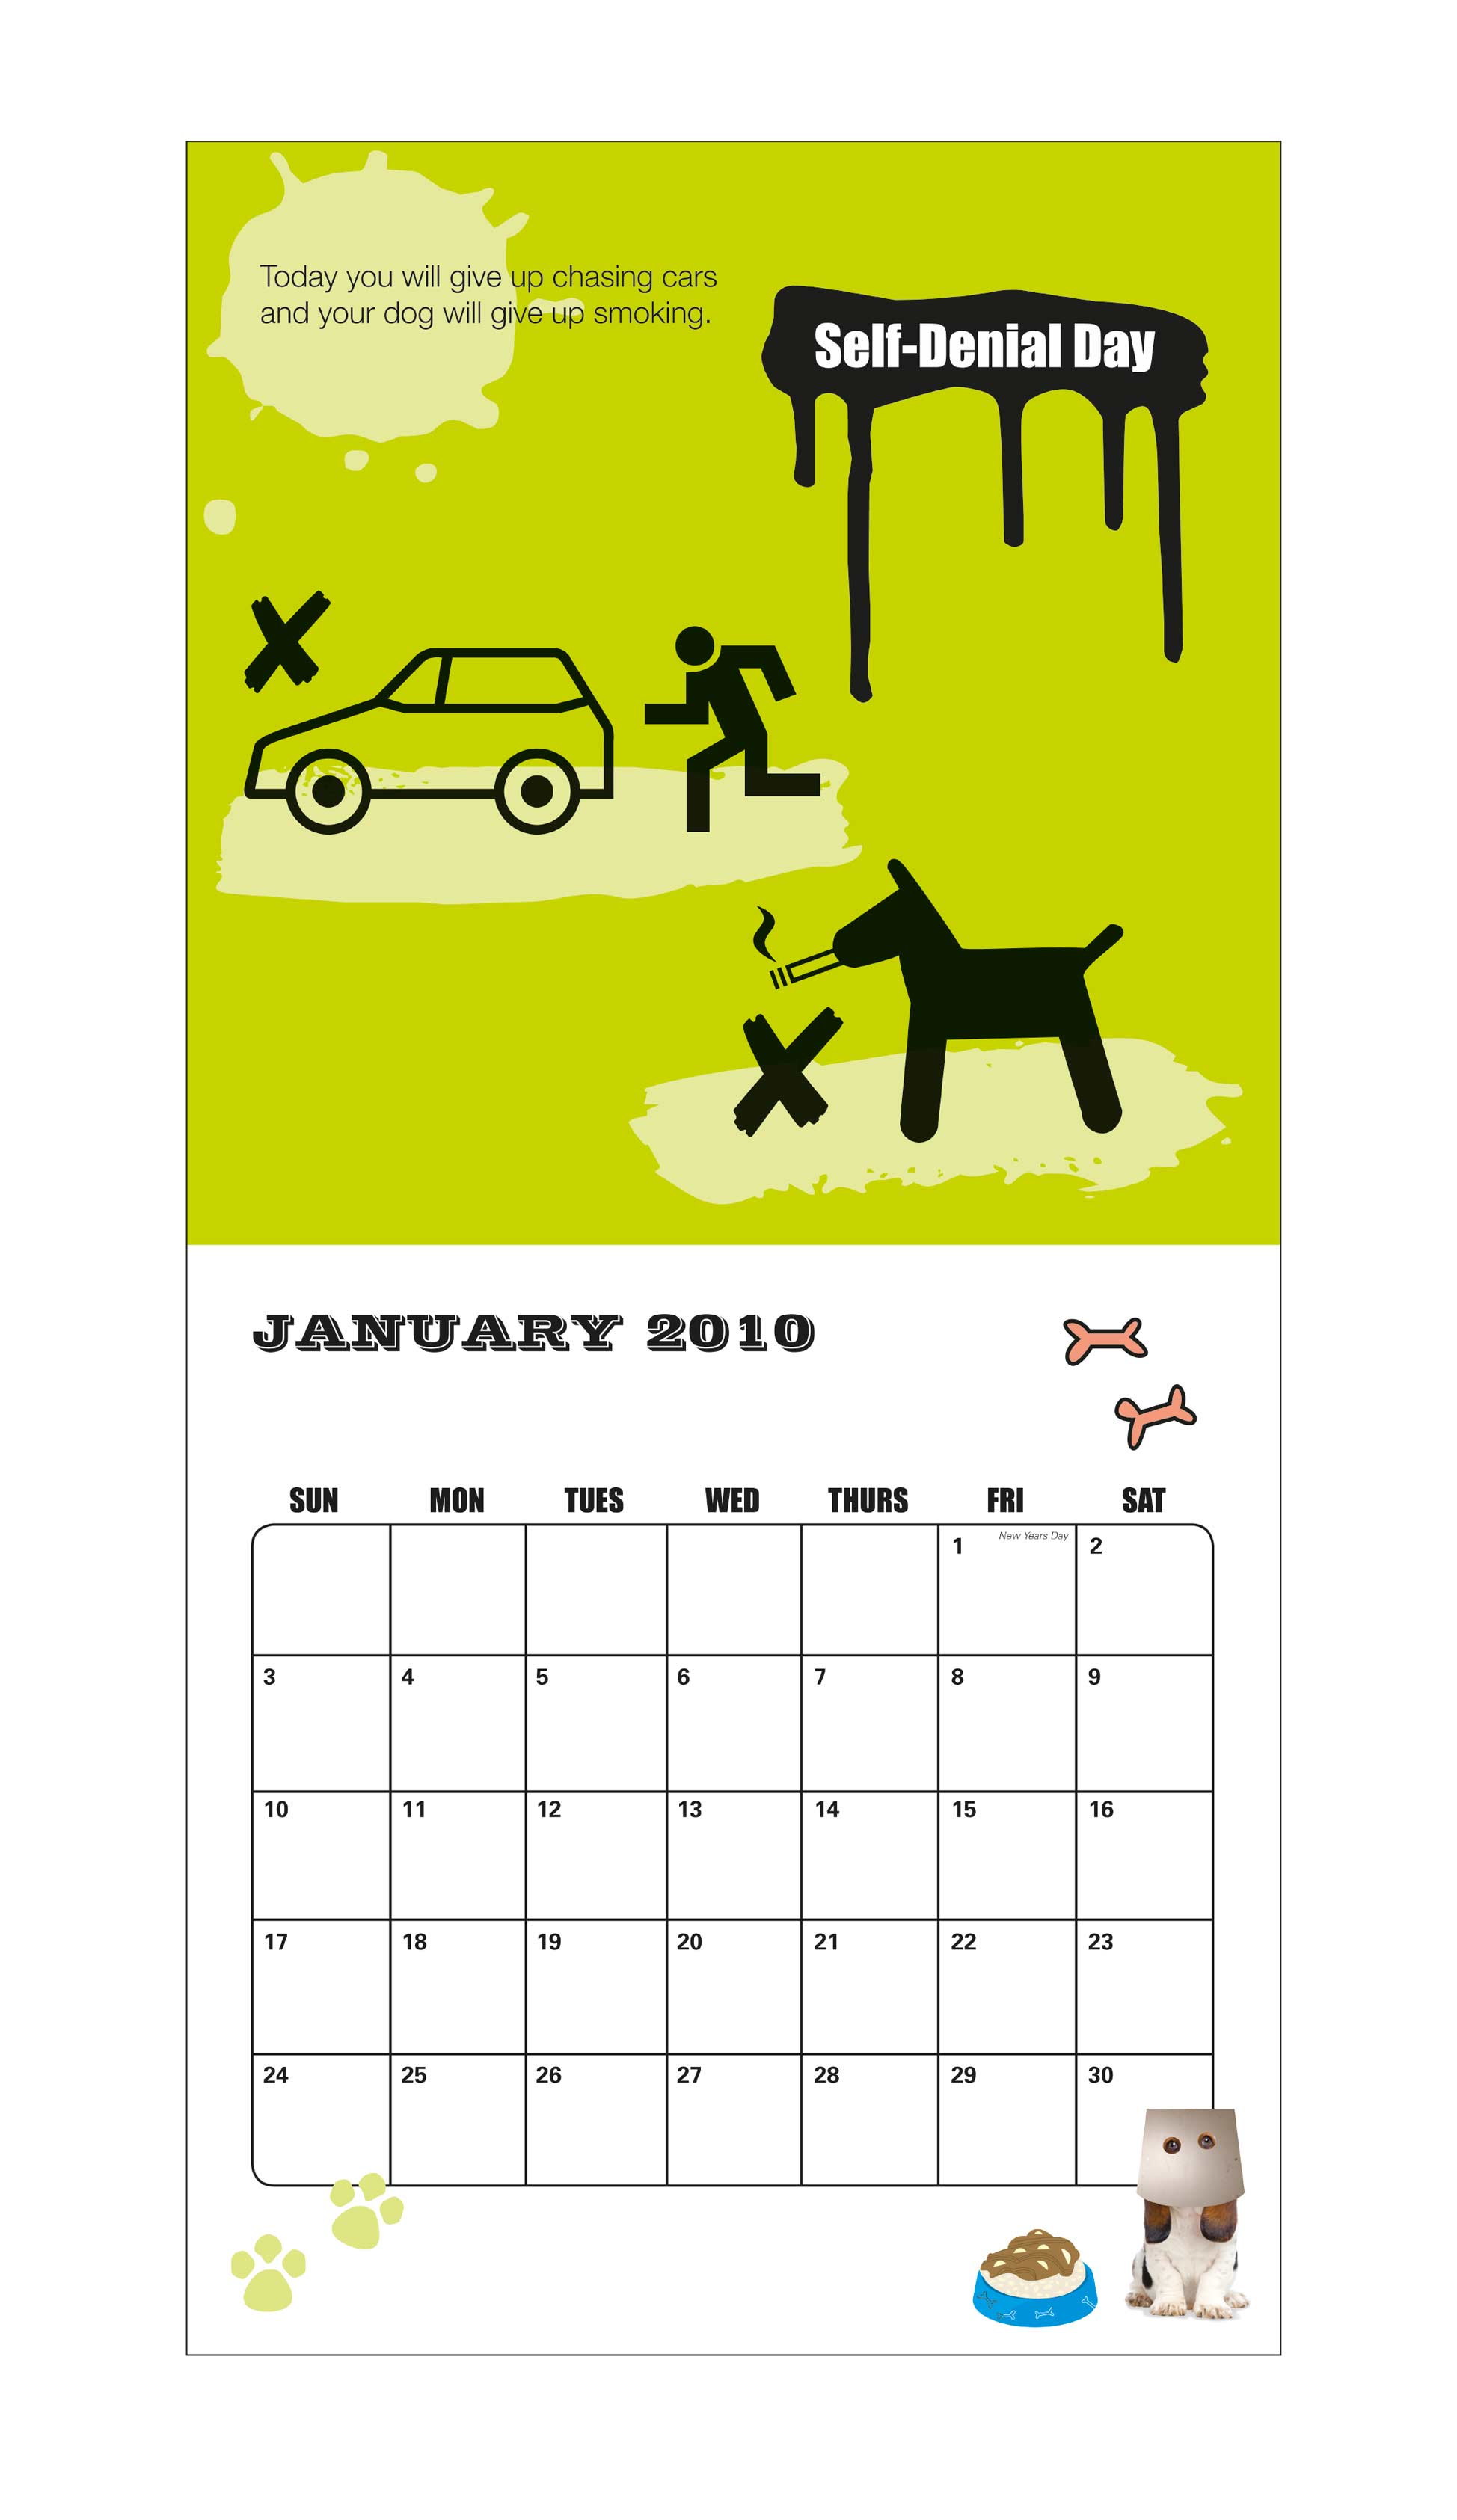 Change Your Dogs Life Calendar